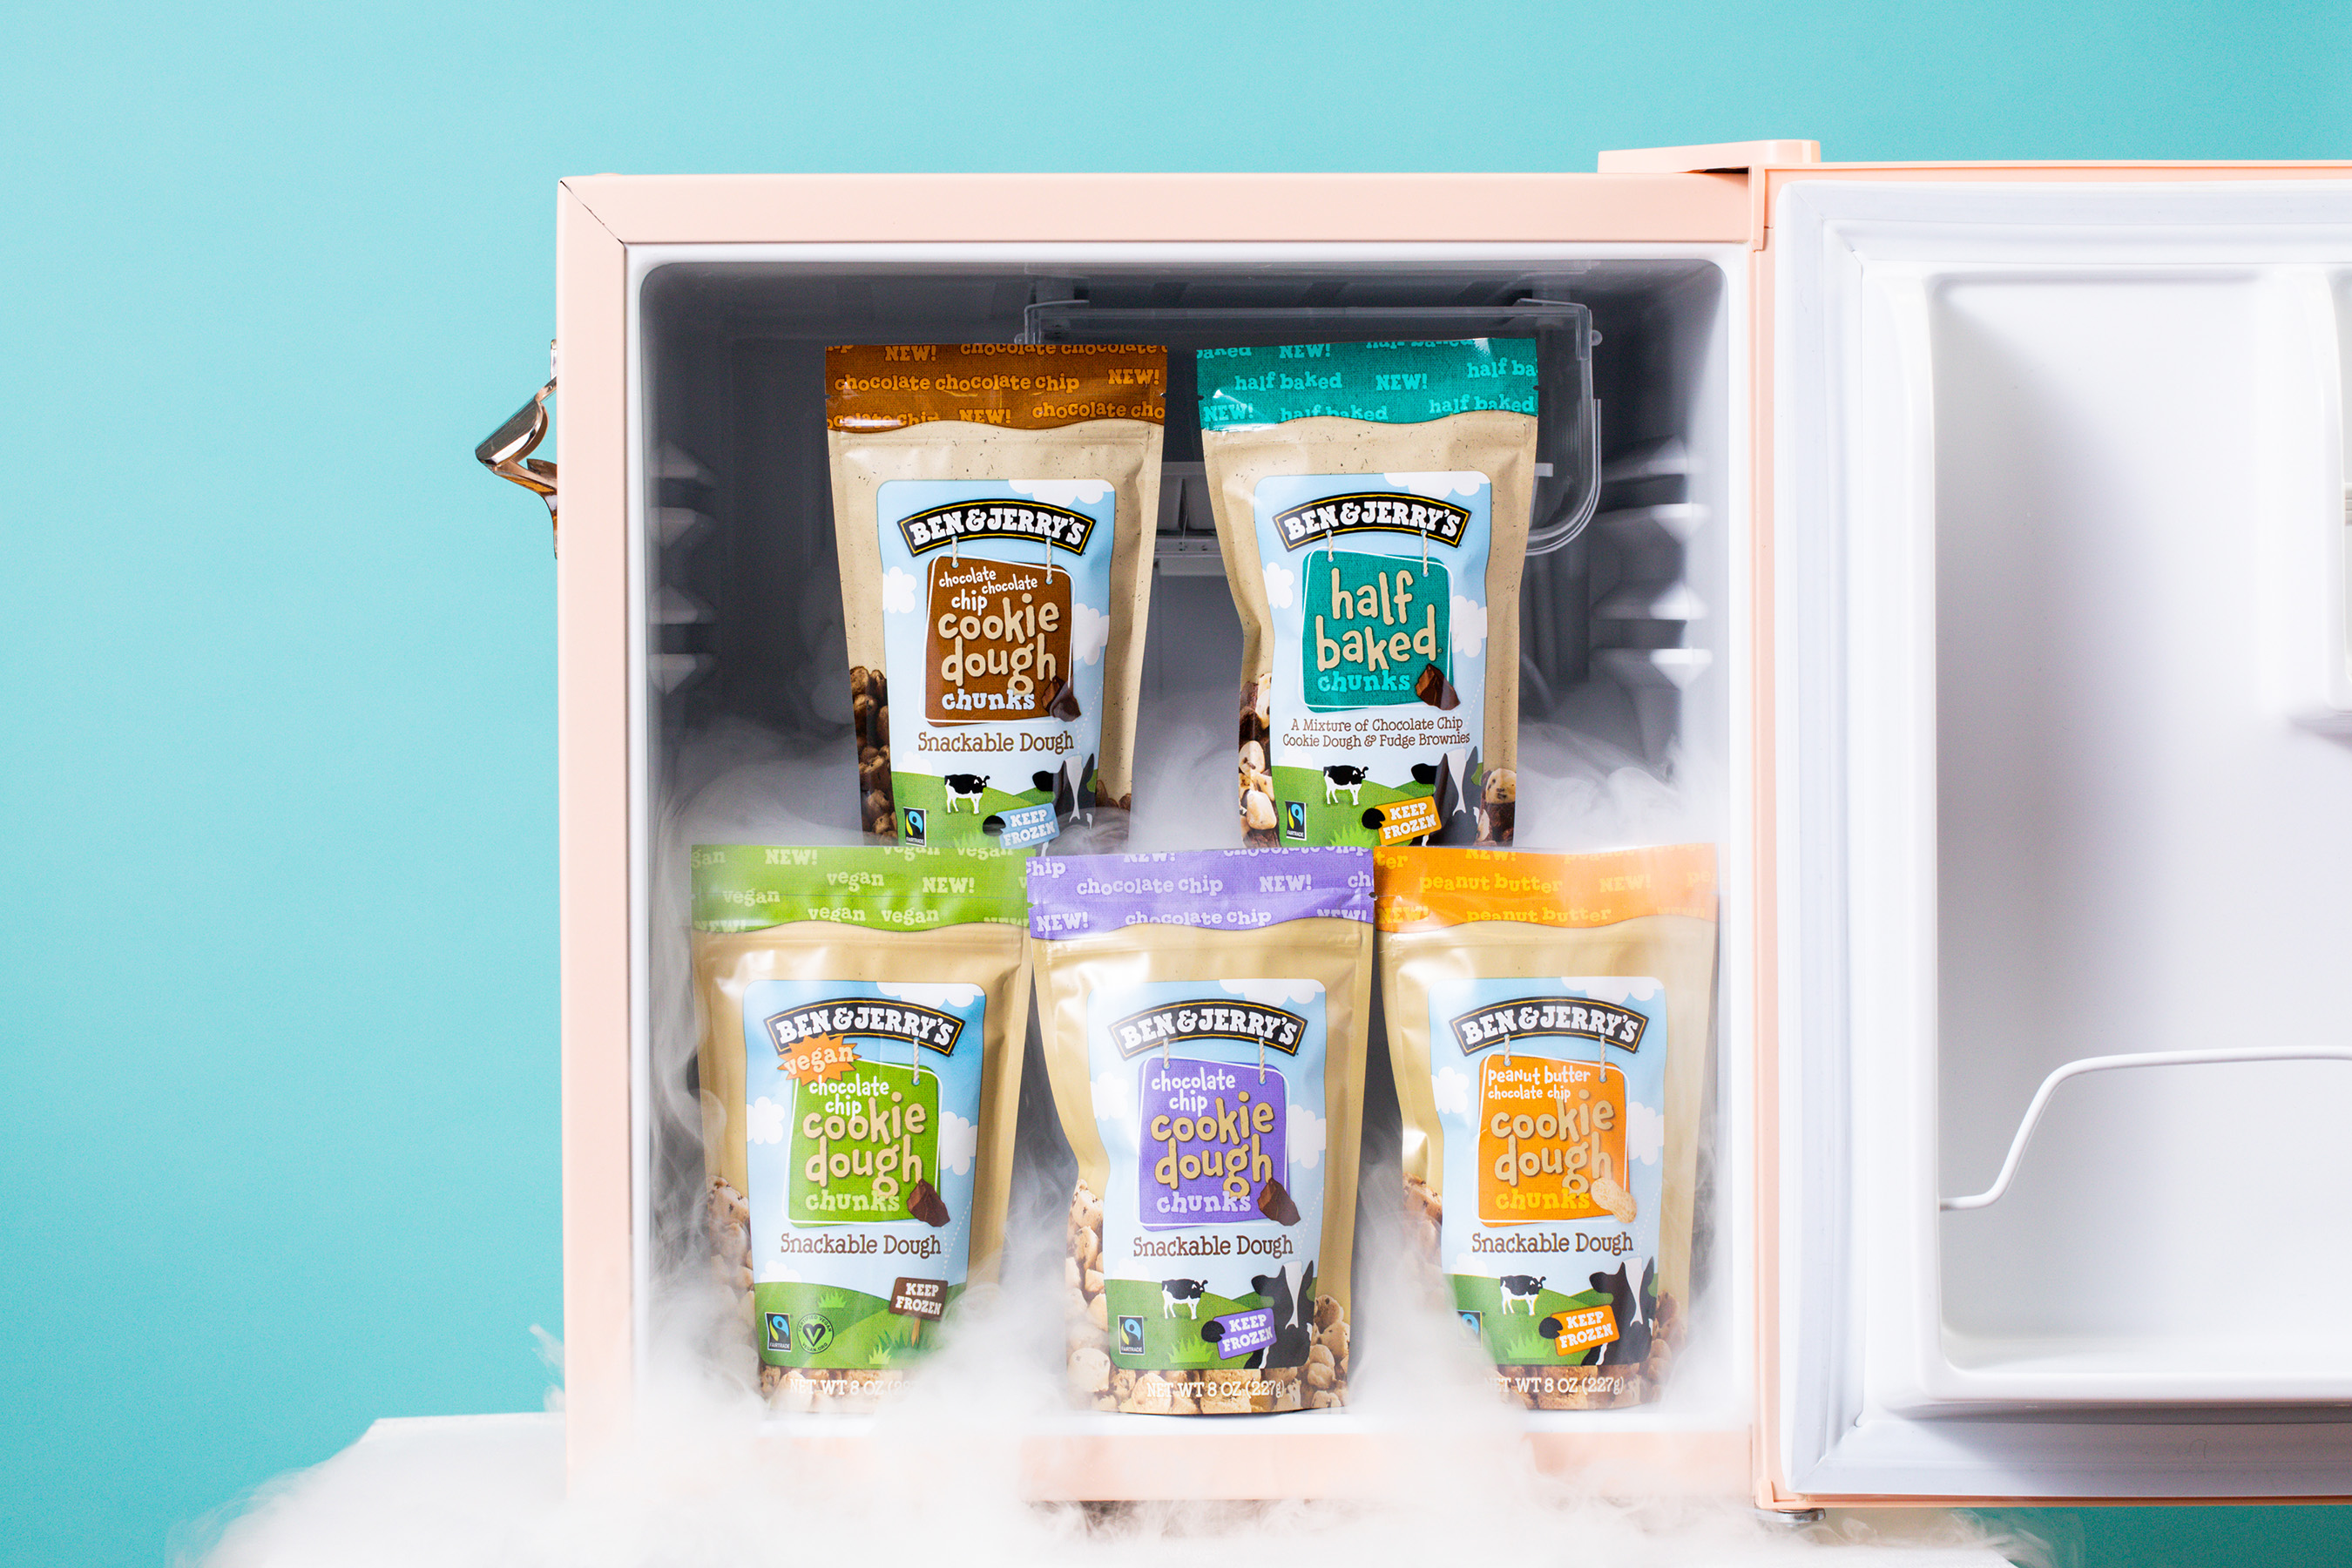 Ben & Jerry's now offers five different types of snackable cookie dough: Chocolate Chip Cookie Dough, Vegan Chocolate Chip Cookie Dough, Peanut Butter Chocolate Chip Cookie Dough, Chocolate Chocolate Chip Cookie Dough, and Half Baked Chunks.